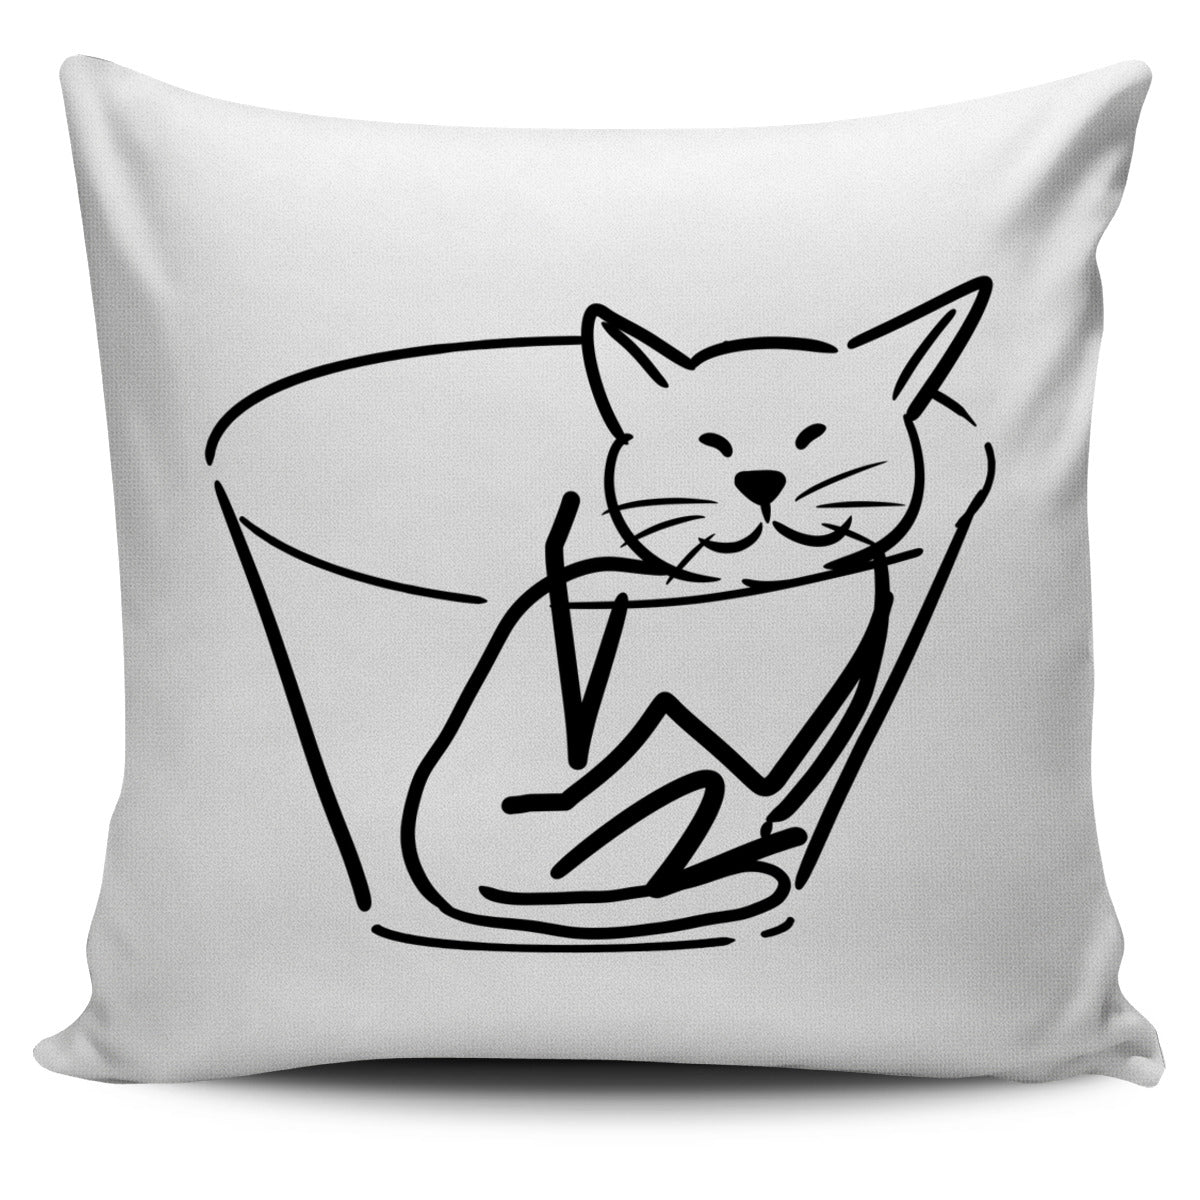 Chilled Cat white Pillow